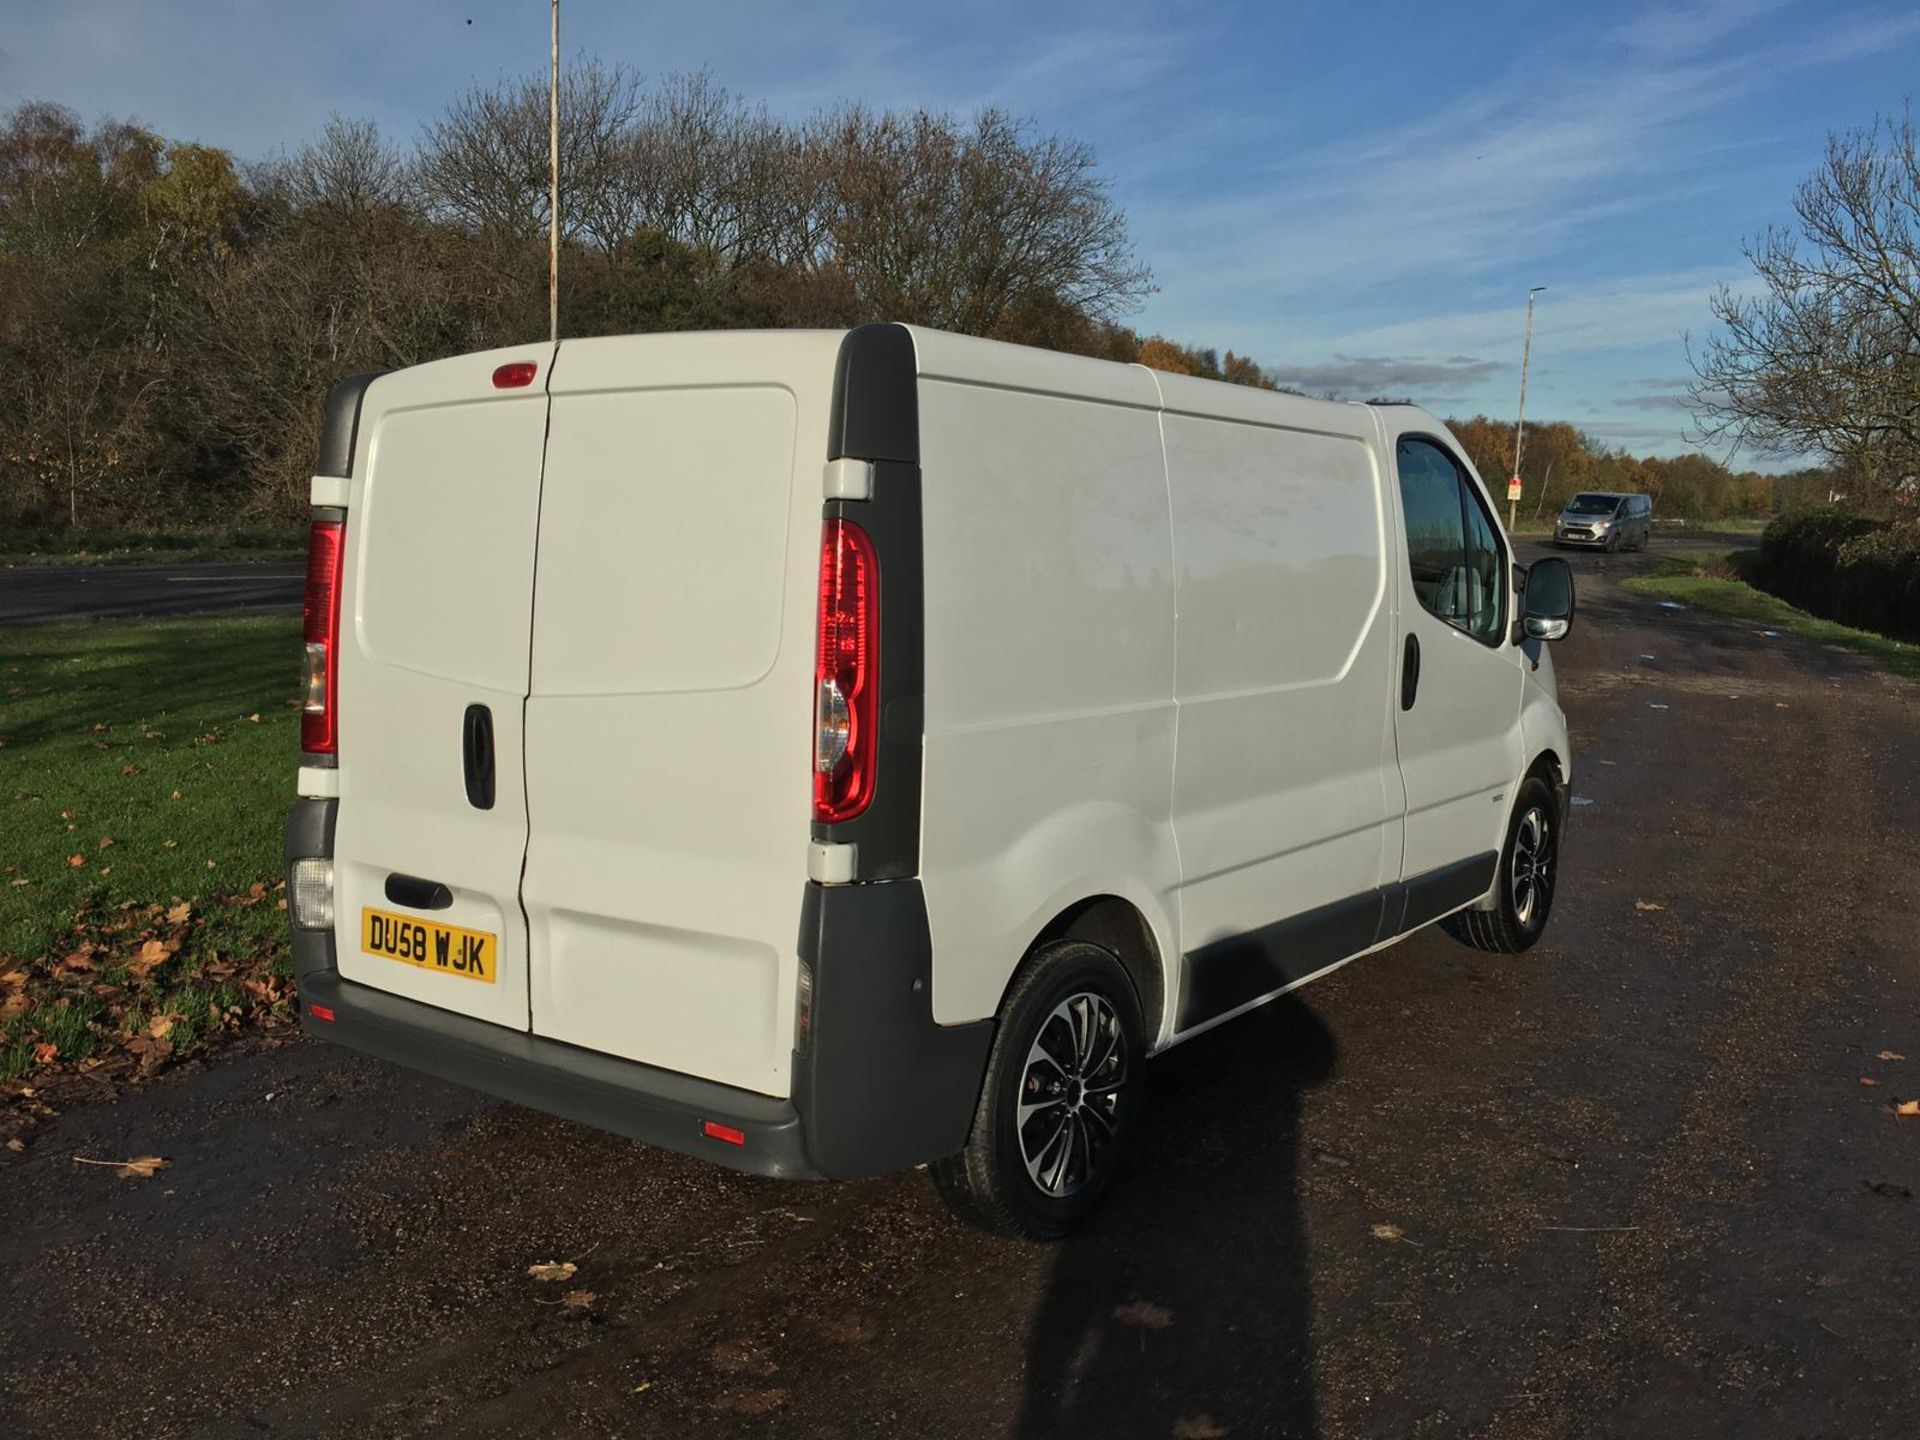 2008/58 REG VAUXHALL VIVARO 2900 CDTI SWB 2.0 DIESEL WHITE PANEL VAN, SHOWING 1 FORMER KEEPER - Image 4 of 12